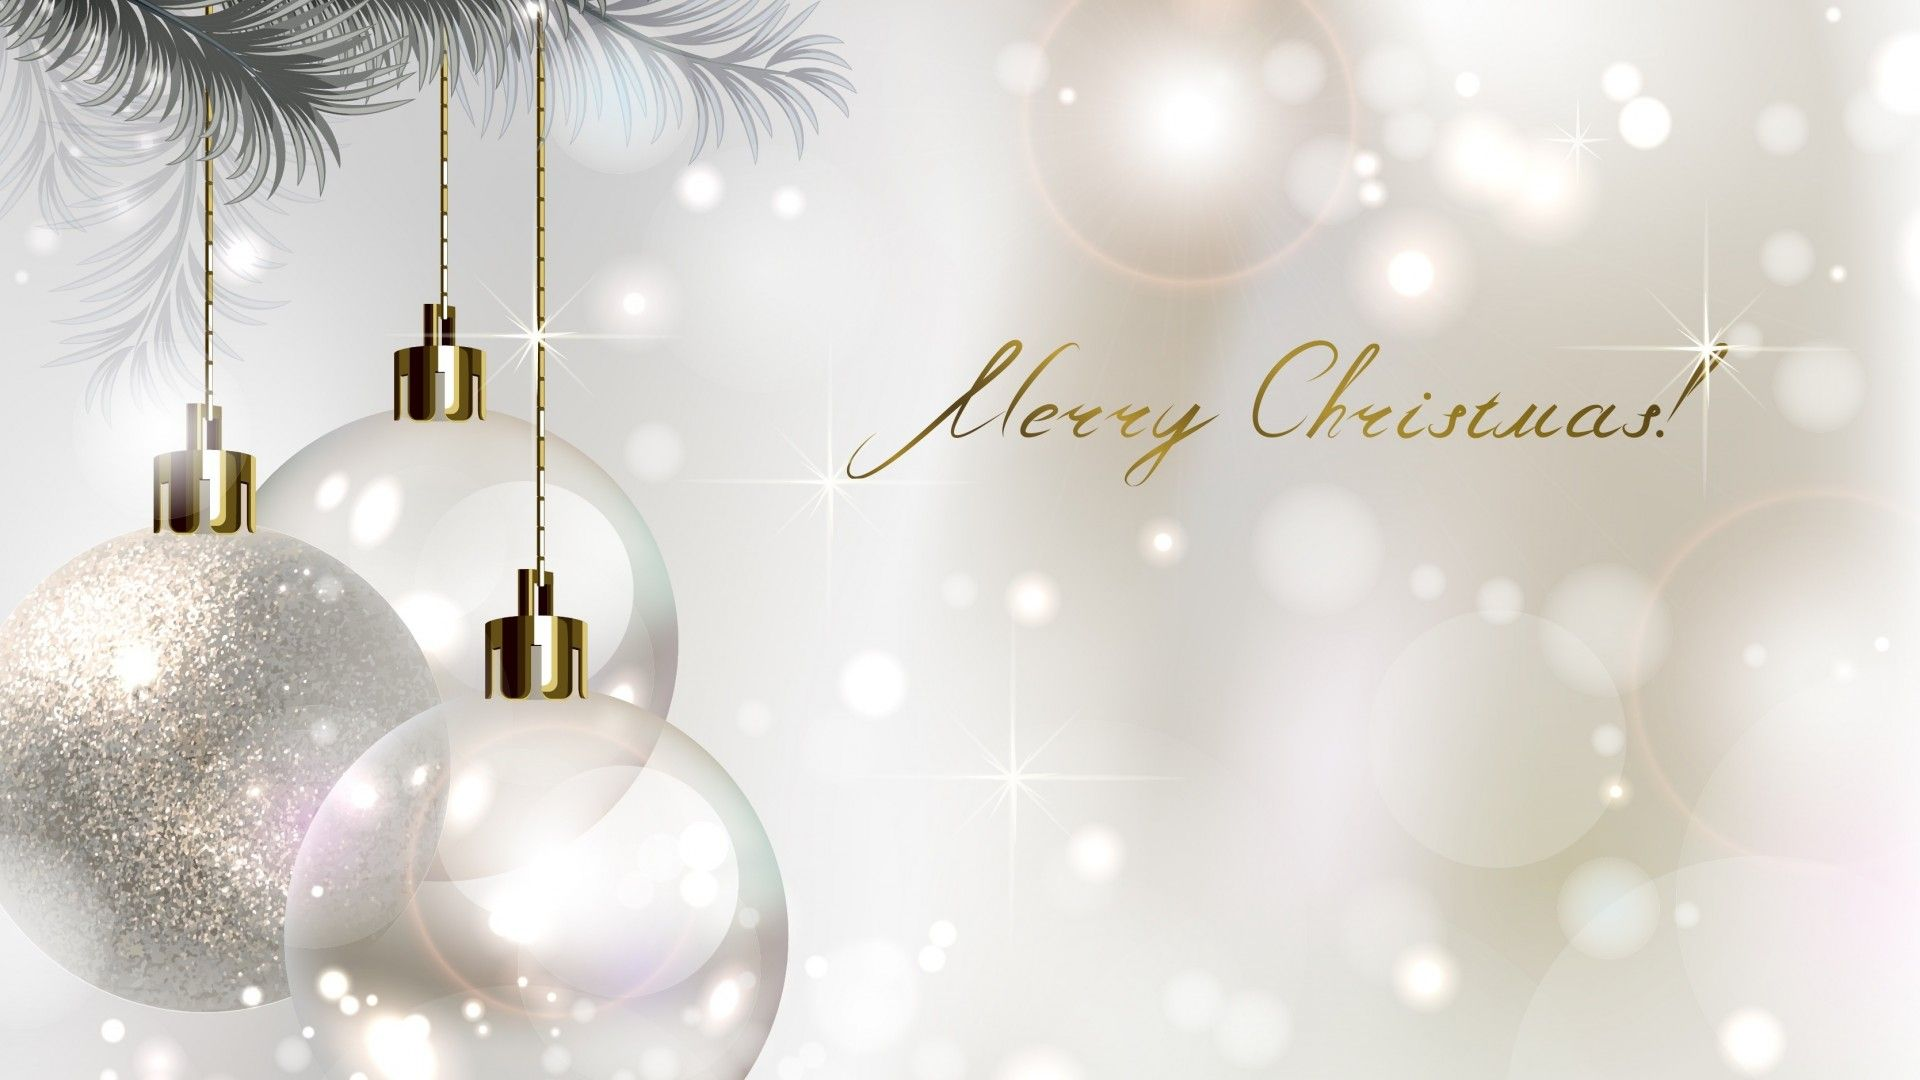 Christmas Wallpaper Full Hd For Desktop Wallpaper 1920 x